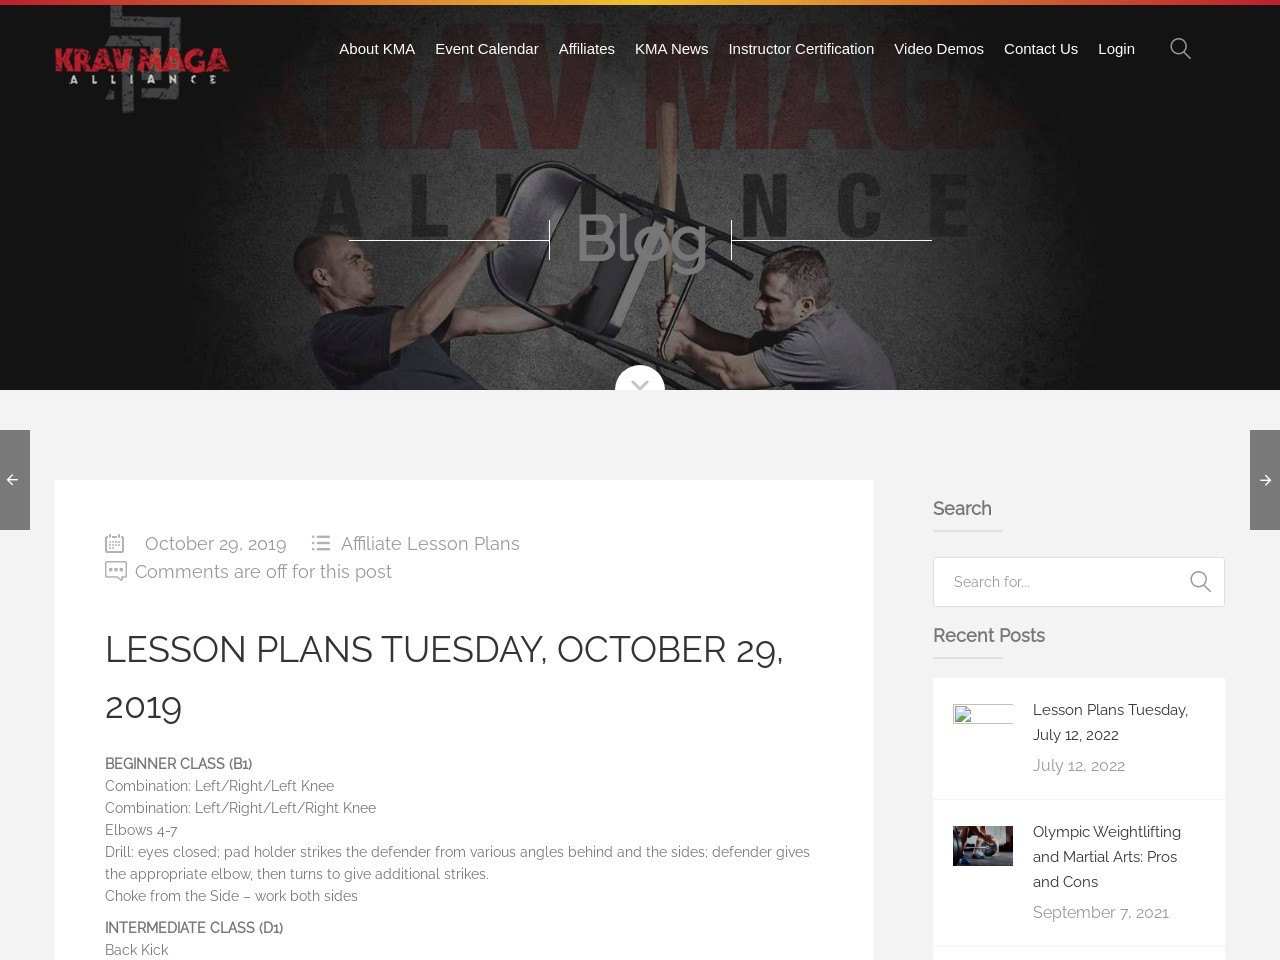 Lesson Plans Tuesday, October 29, 2019